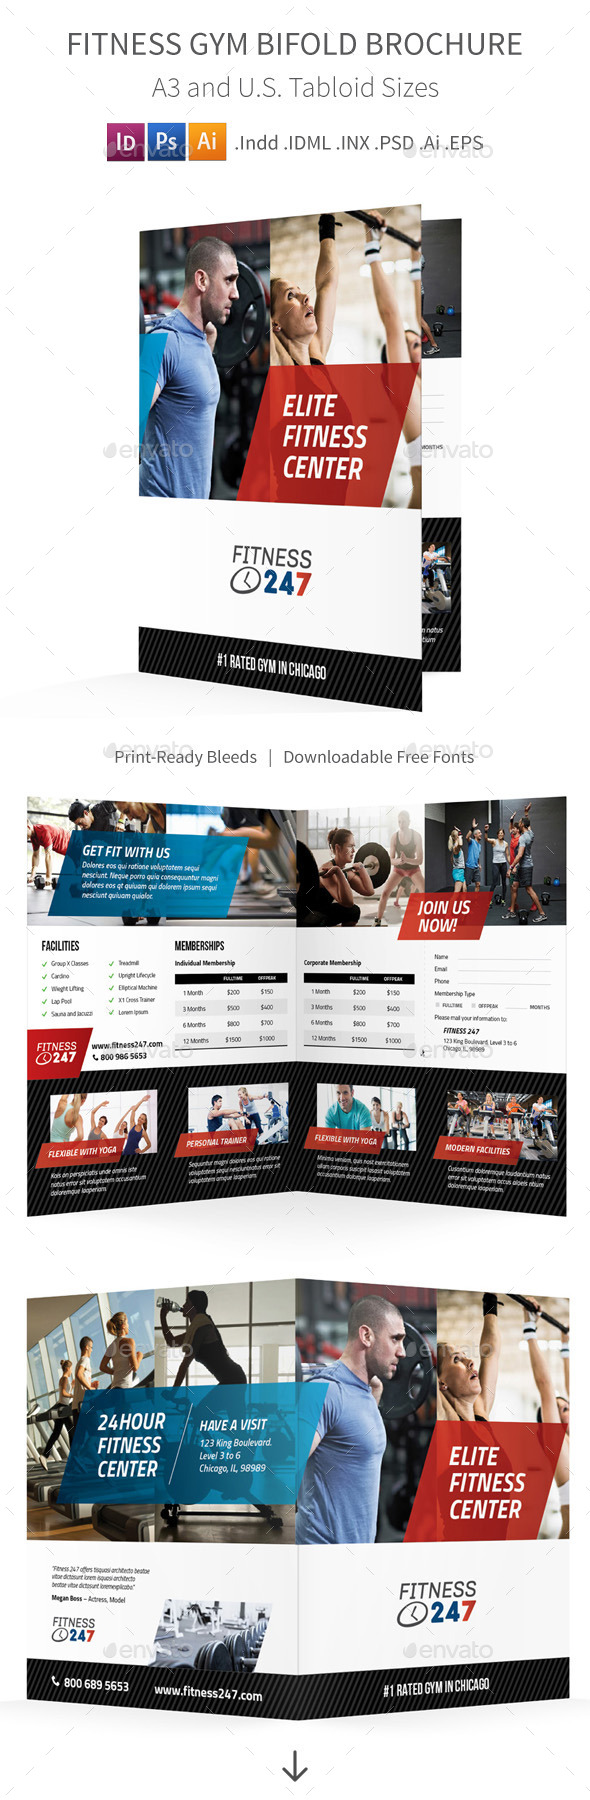 GraphicRiver Fitness Gym Bifold Halffold Brochure 11061167